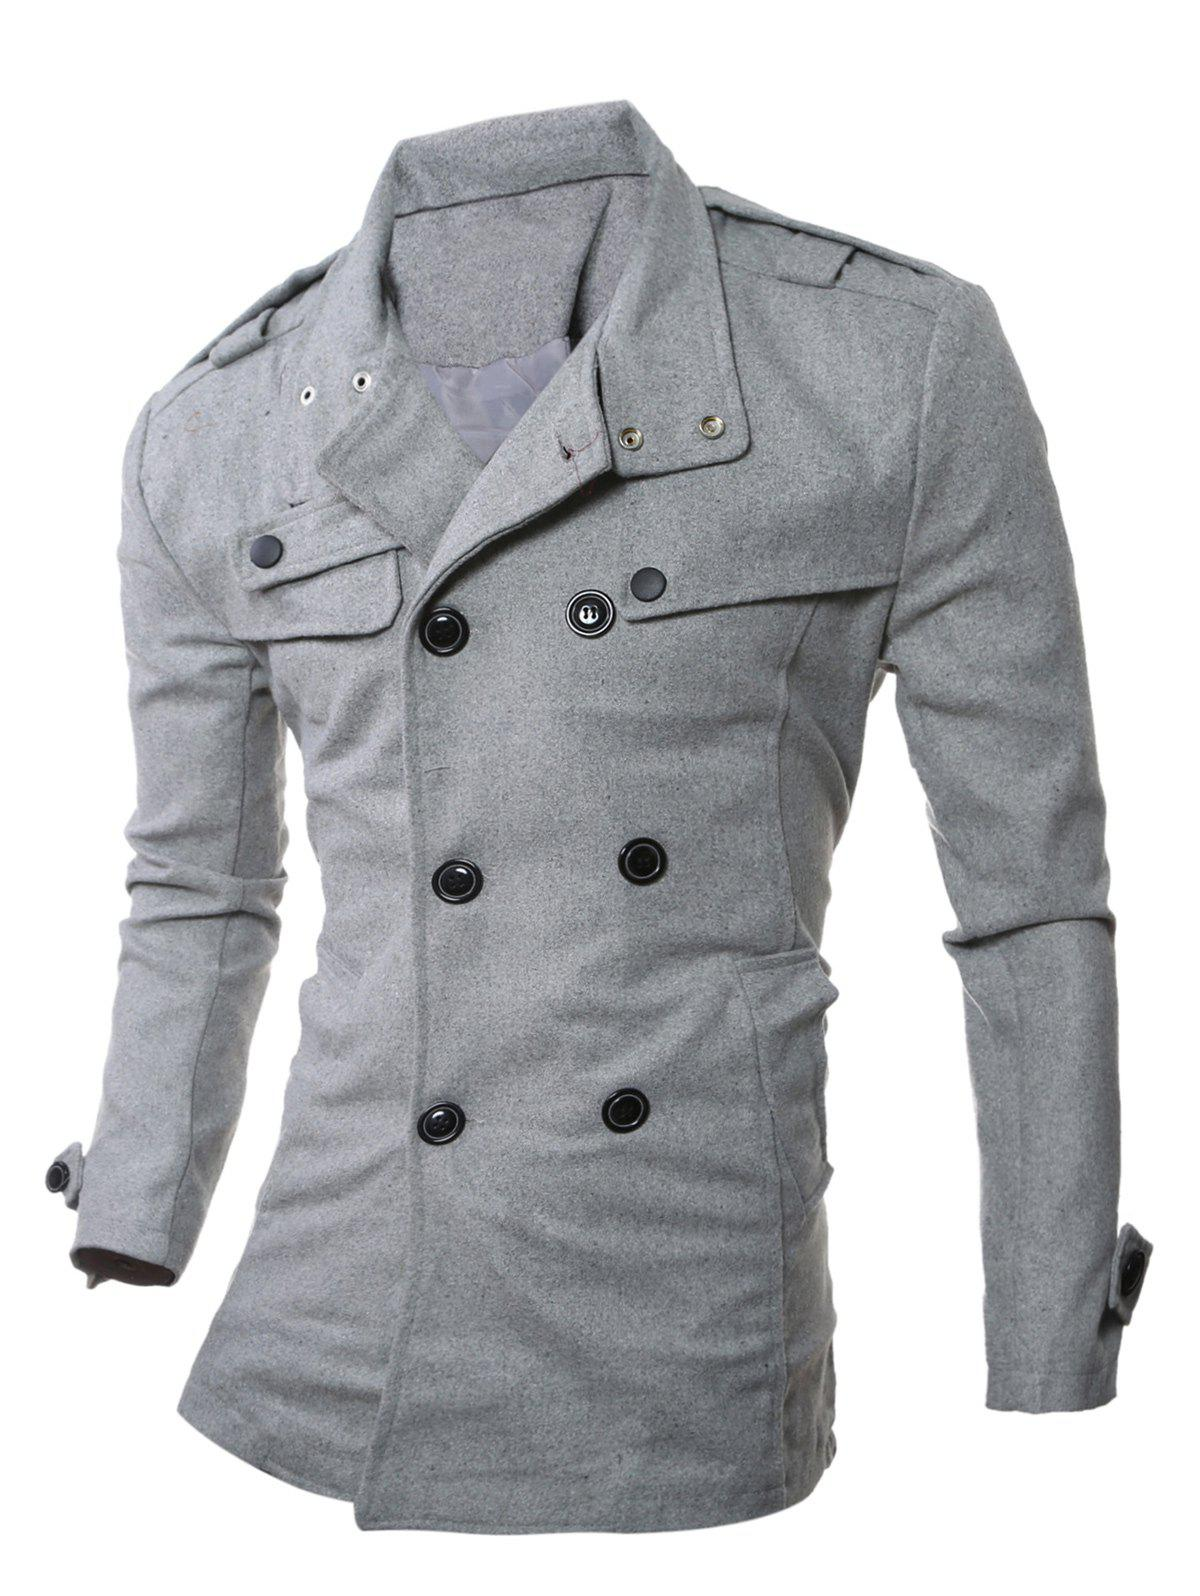 Double Breasted Epaulet Embellished Woolen Coat - GRAY L